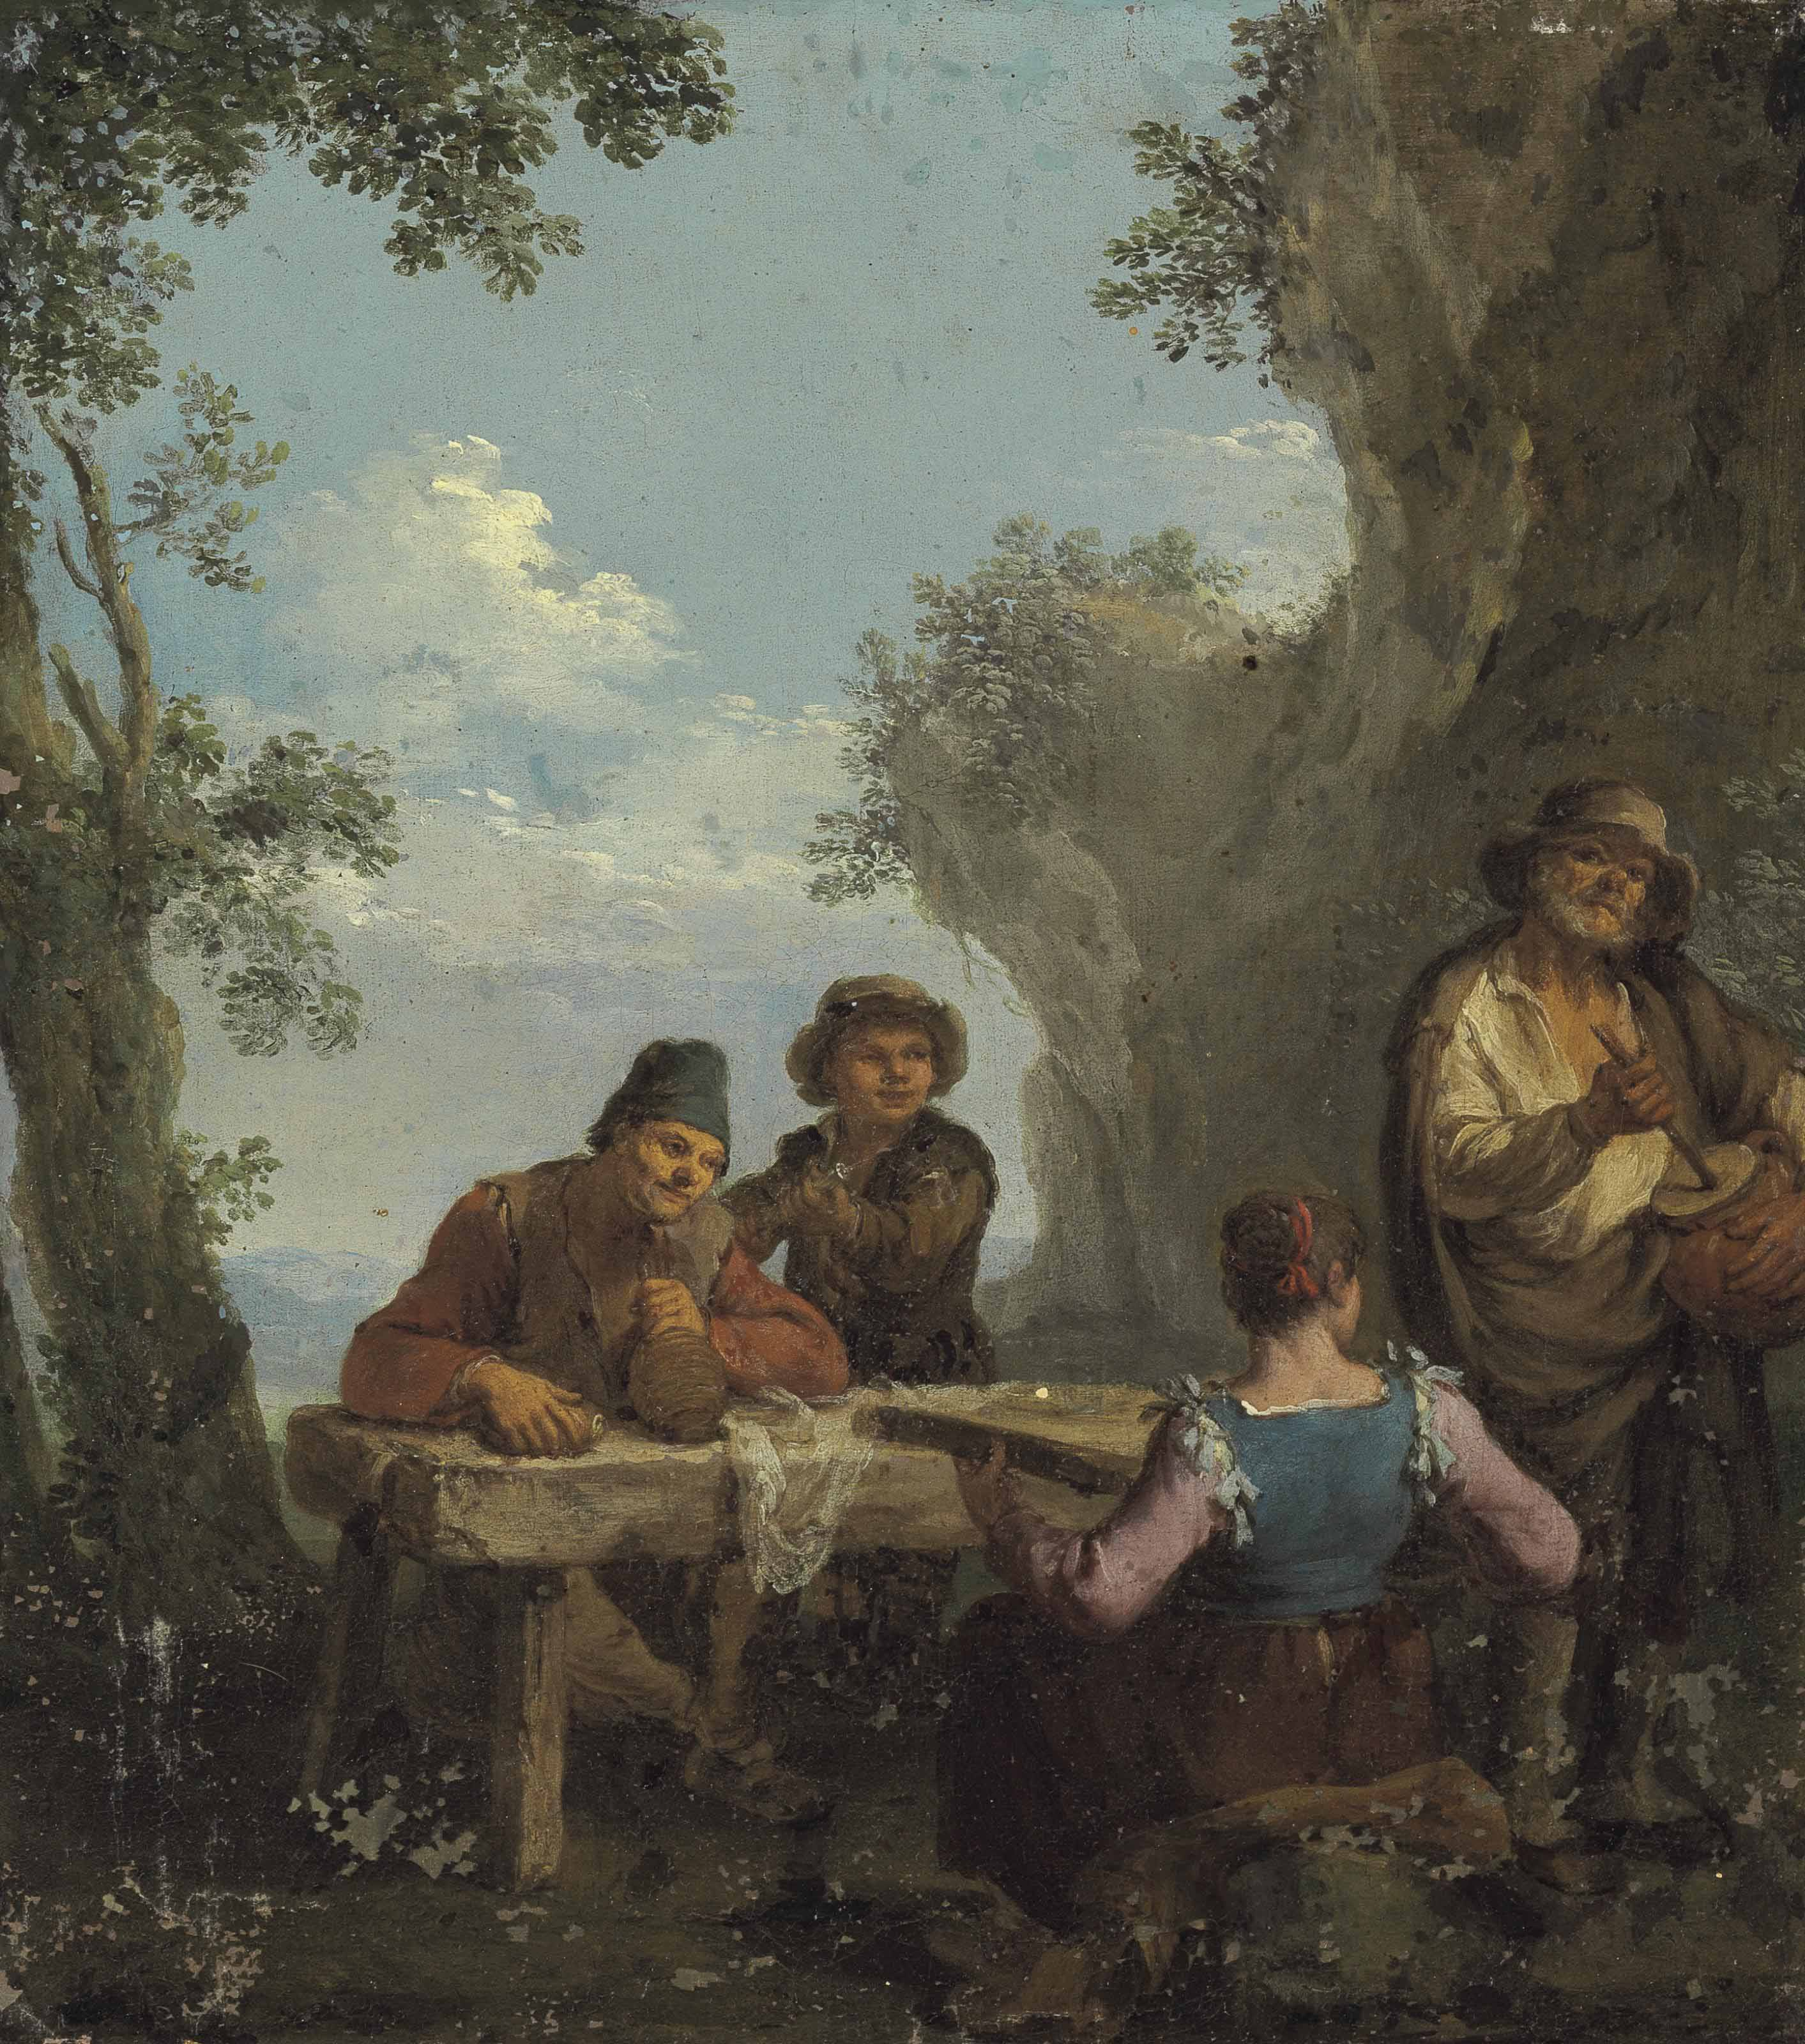 Four peasants playing music